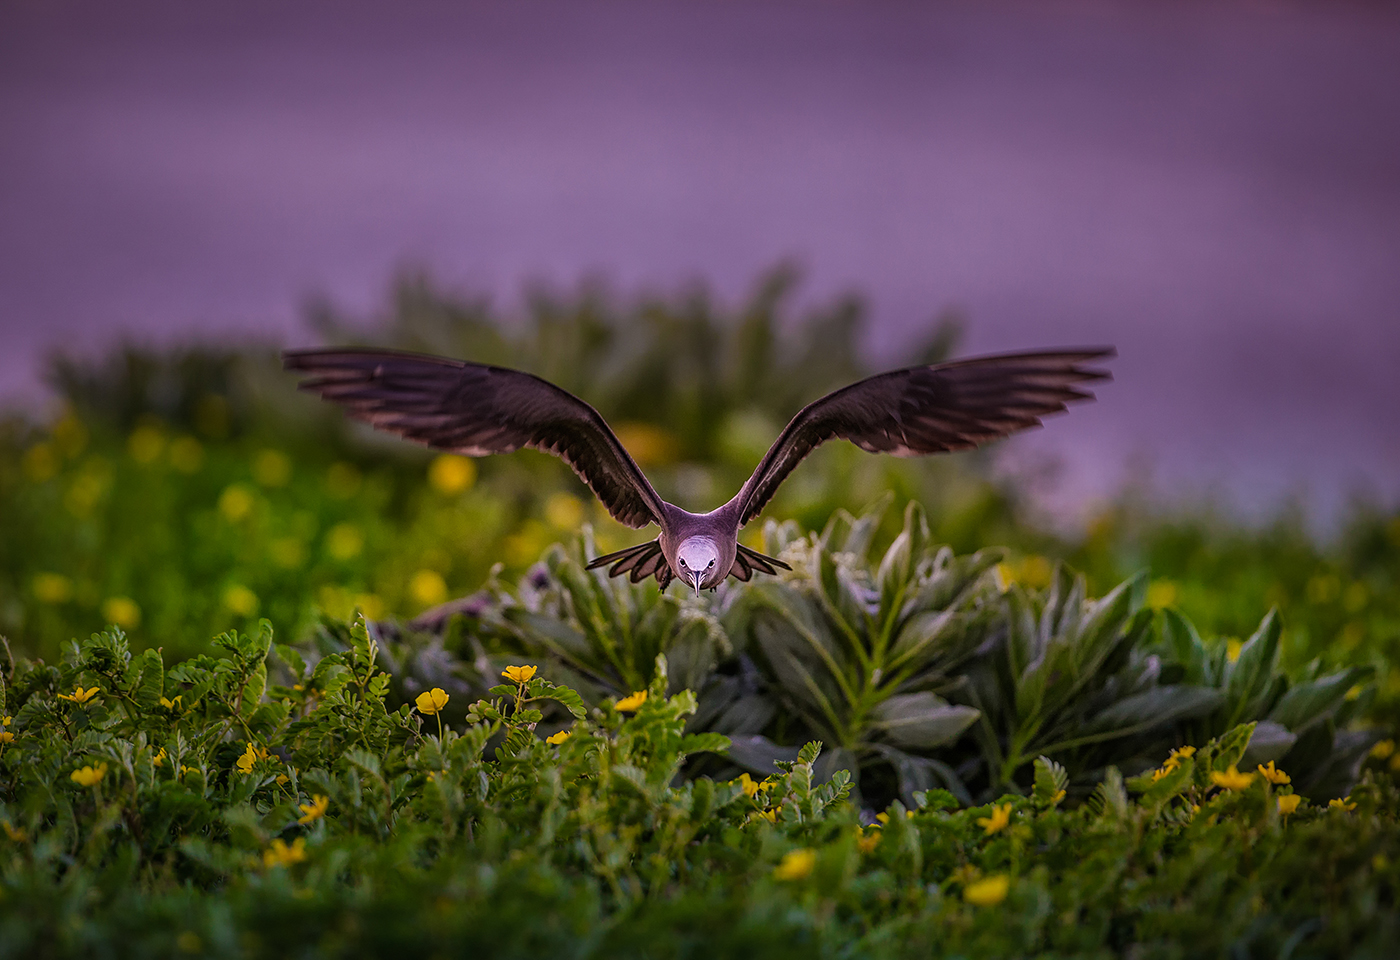 Image of bird in flight